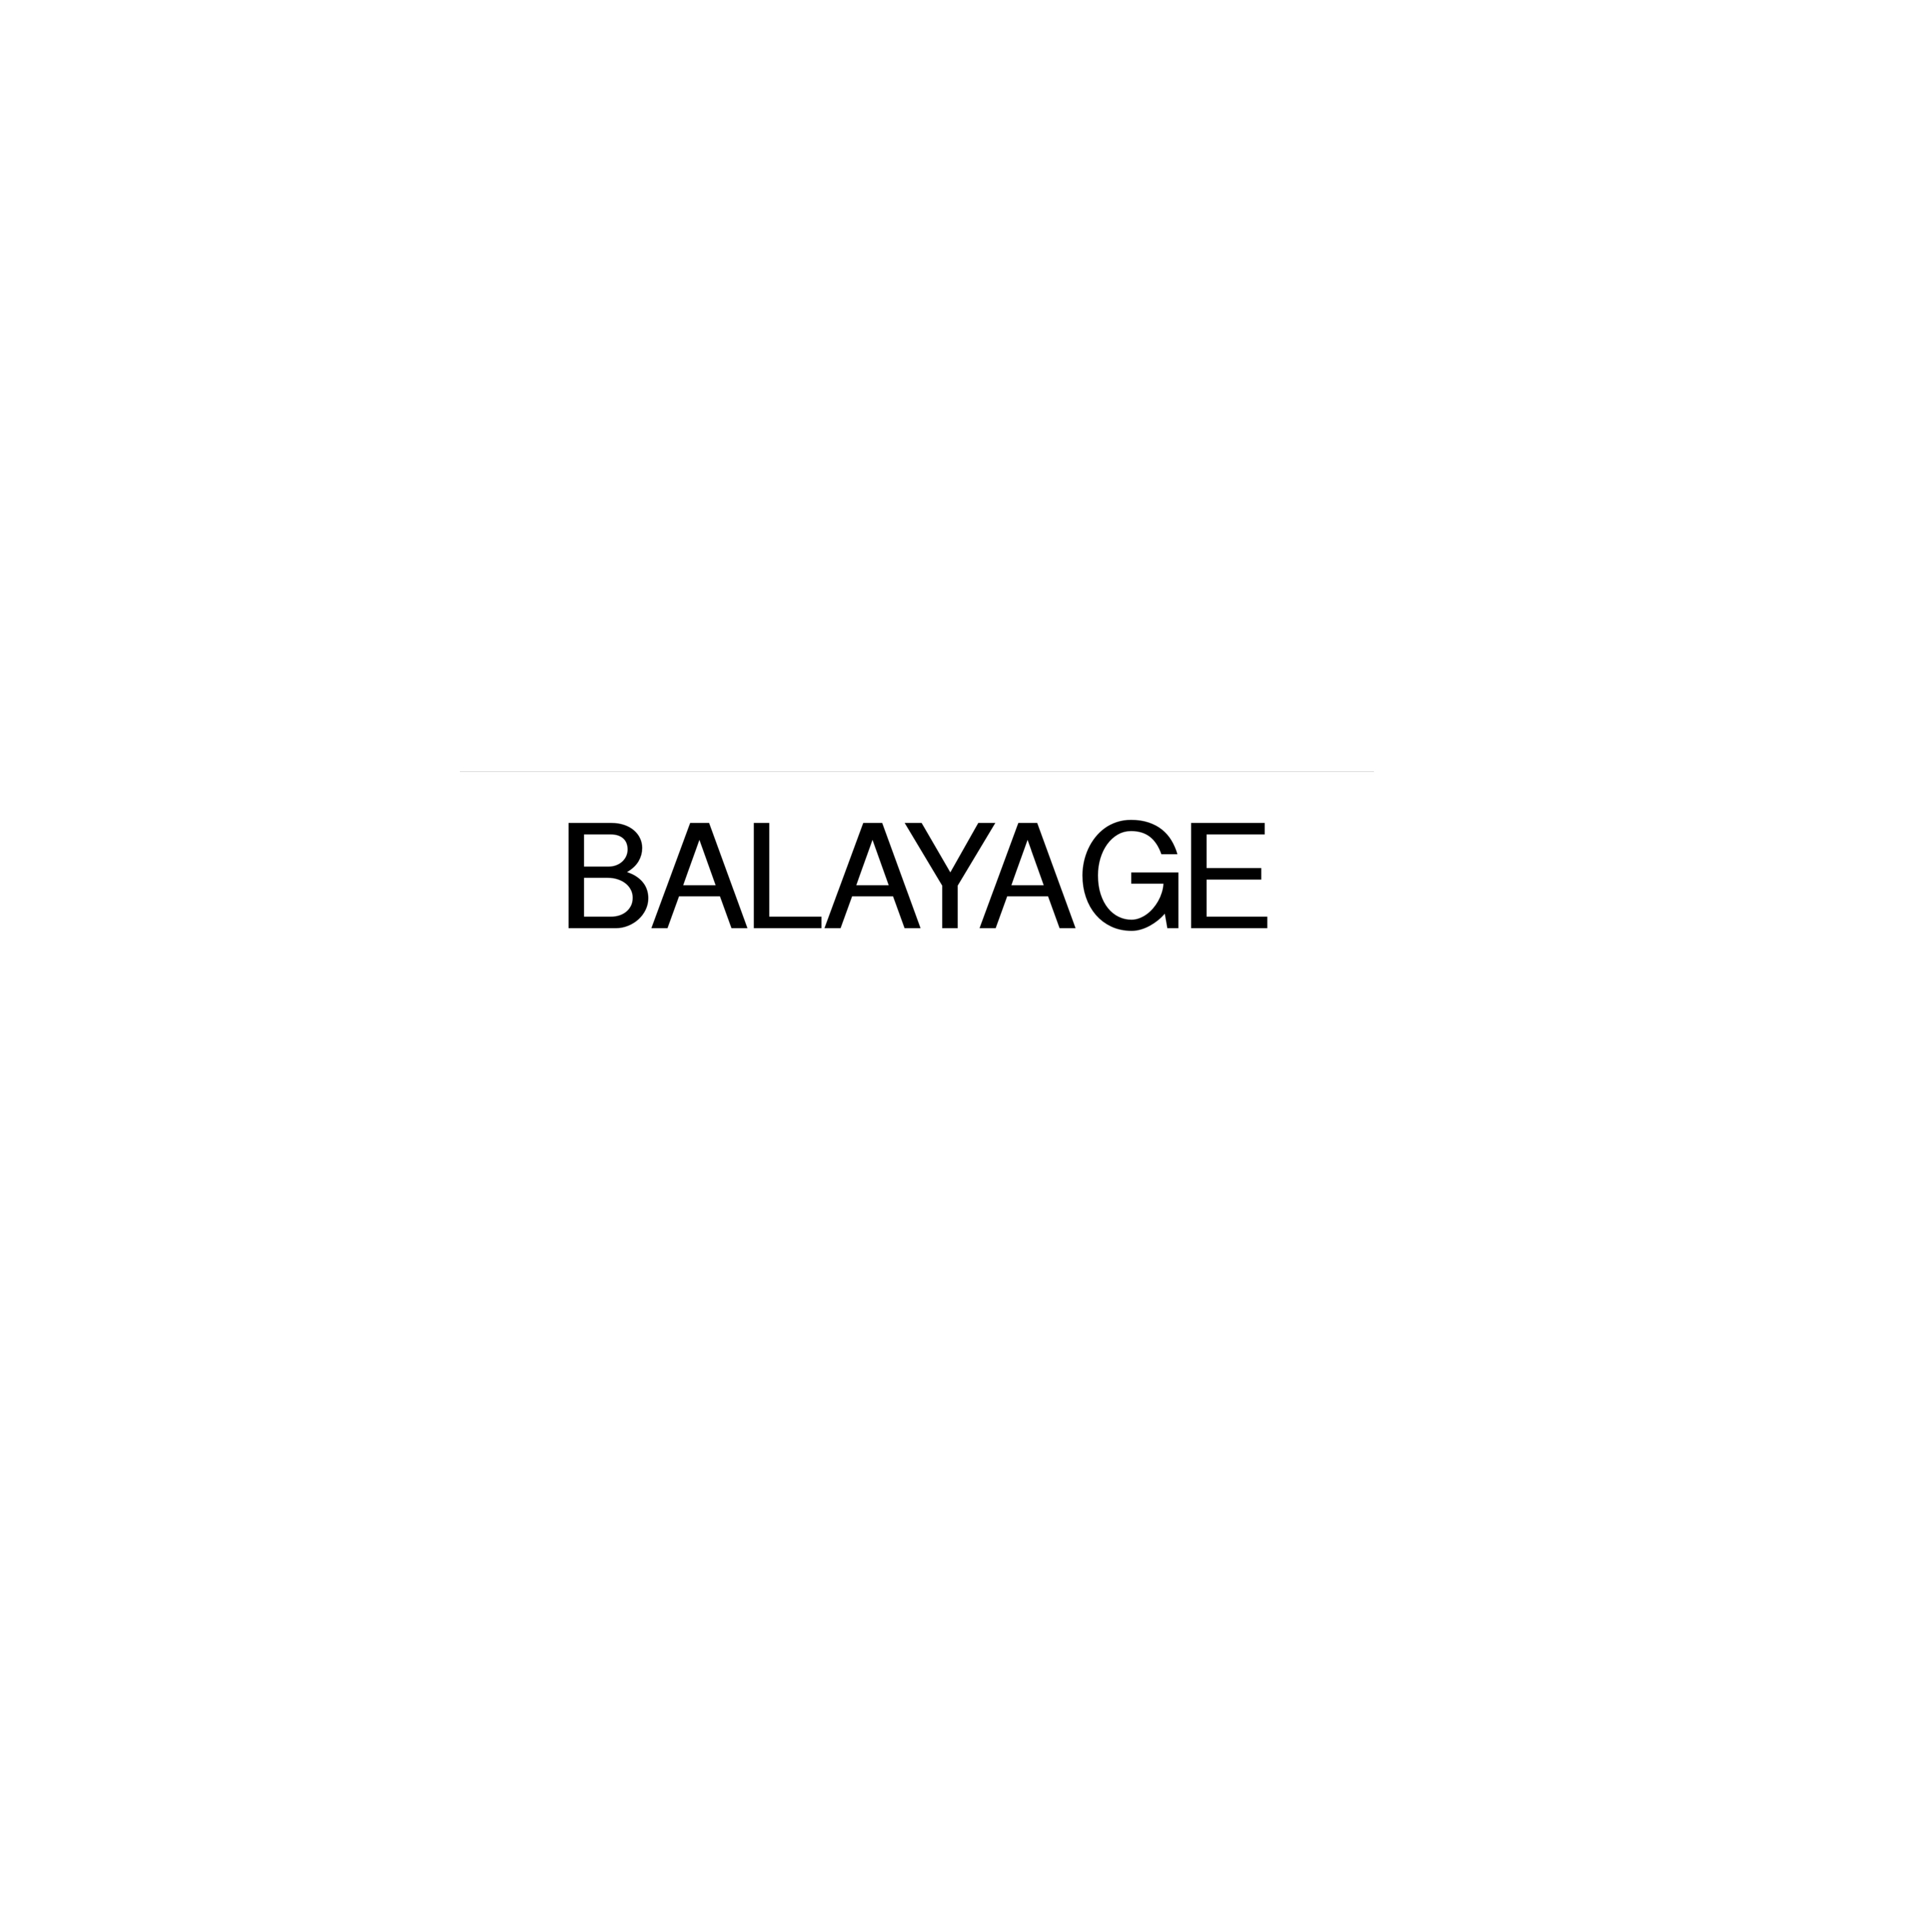 BALAYAGE: Get Tips and a Video Demo From a Master